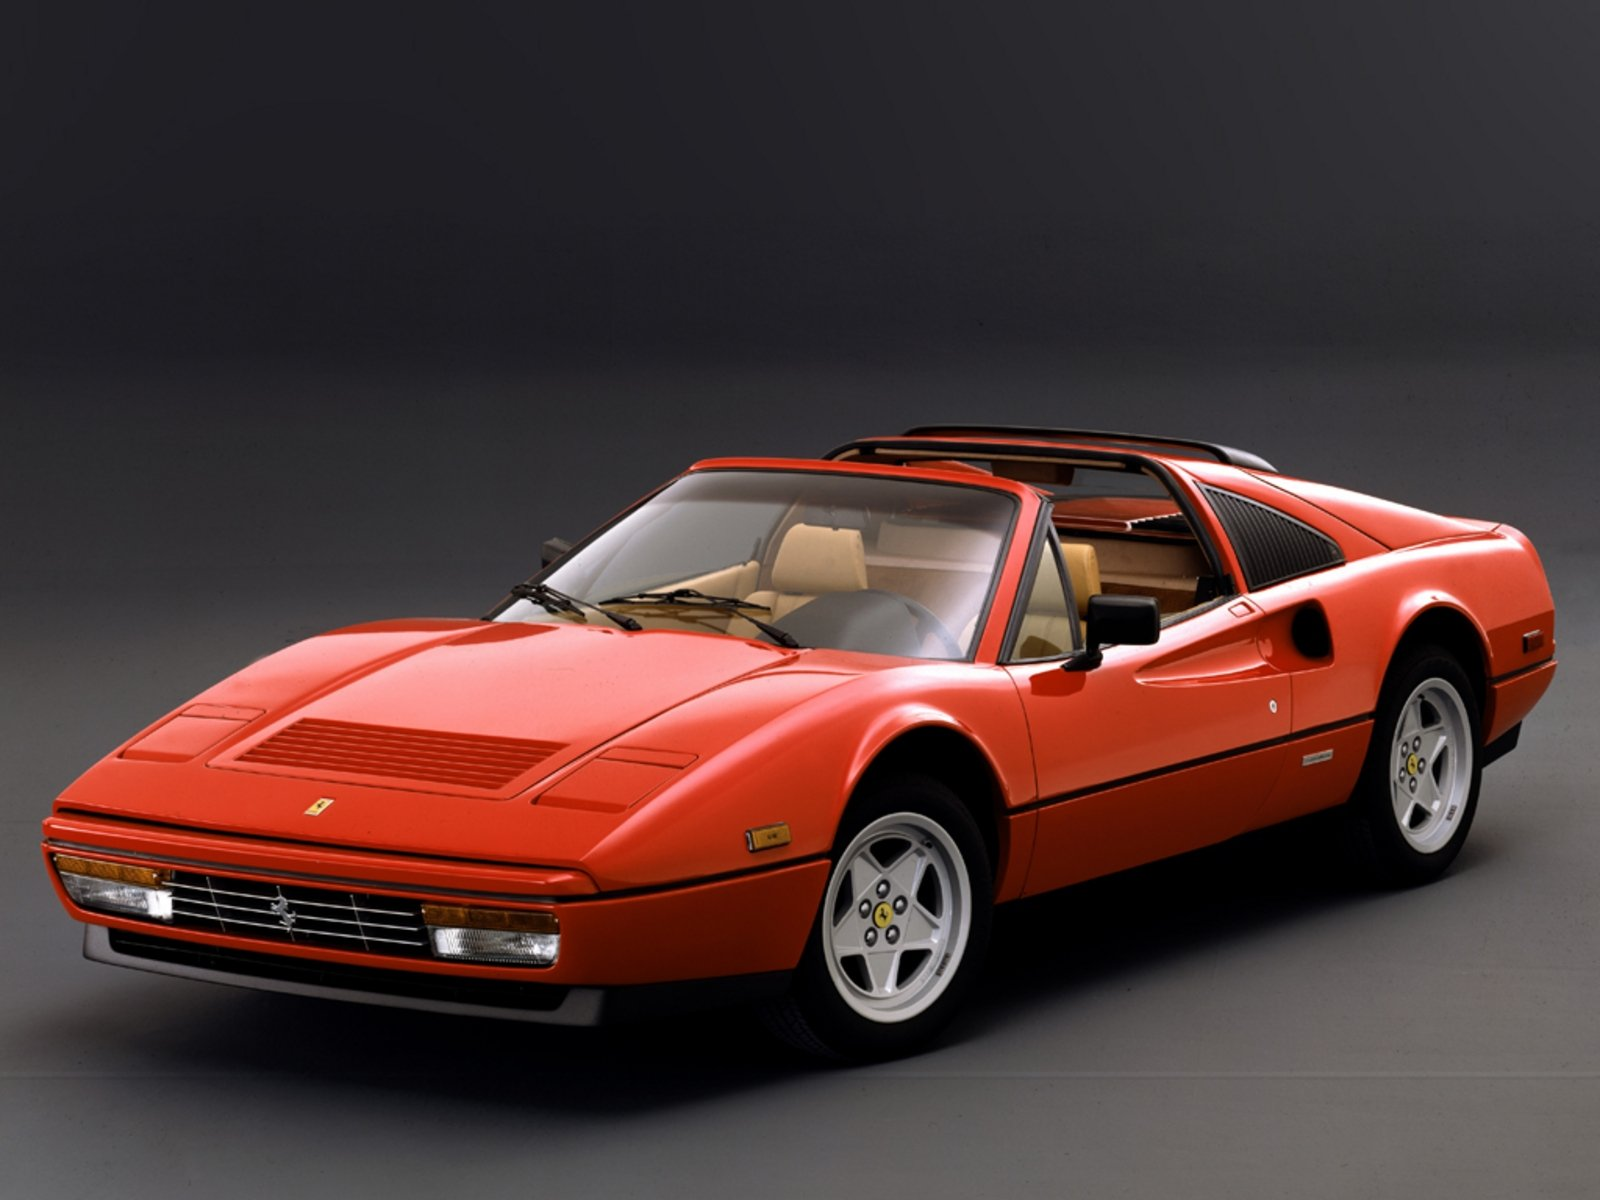 1985 1989 ferrari 328 gts review top speed. Black Bedroom Furniture Sets. Home Design Ideas